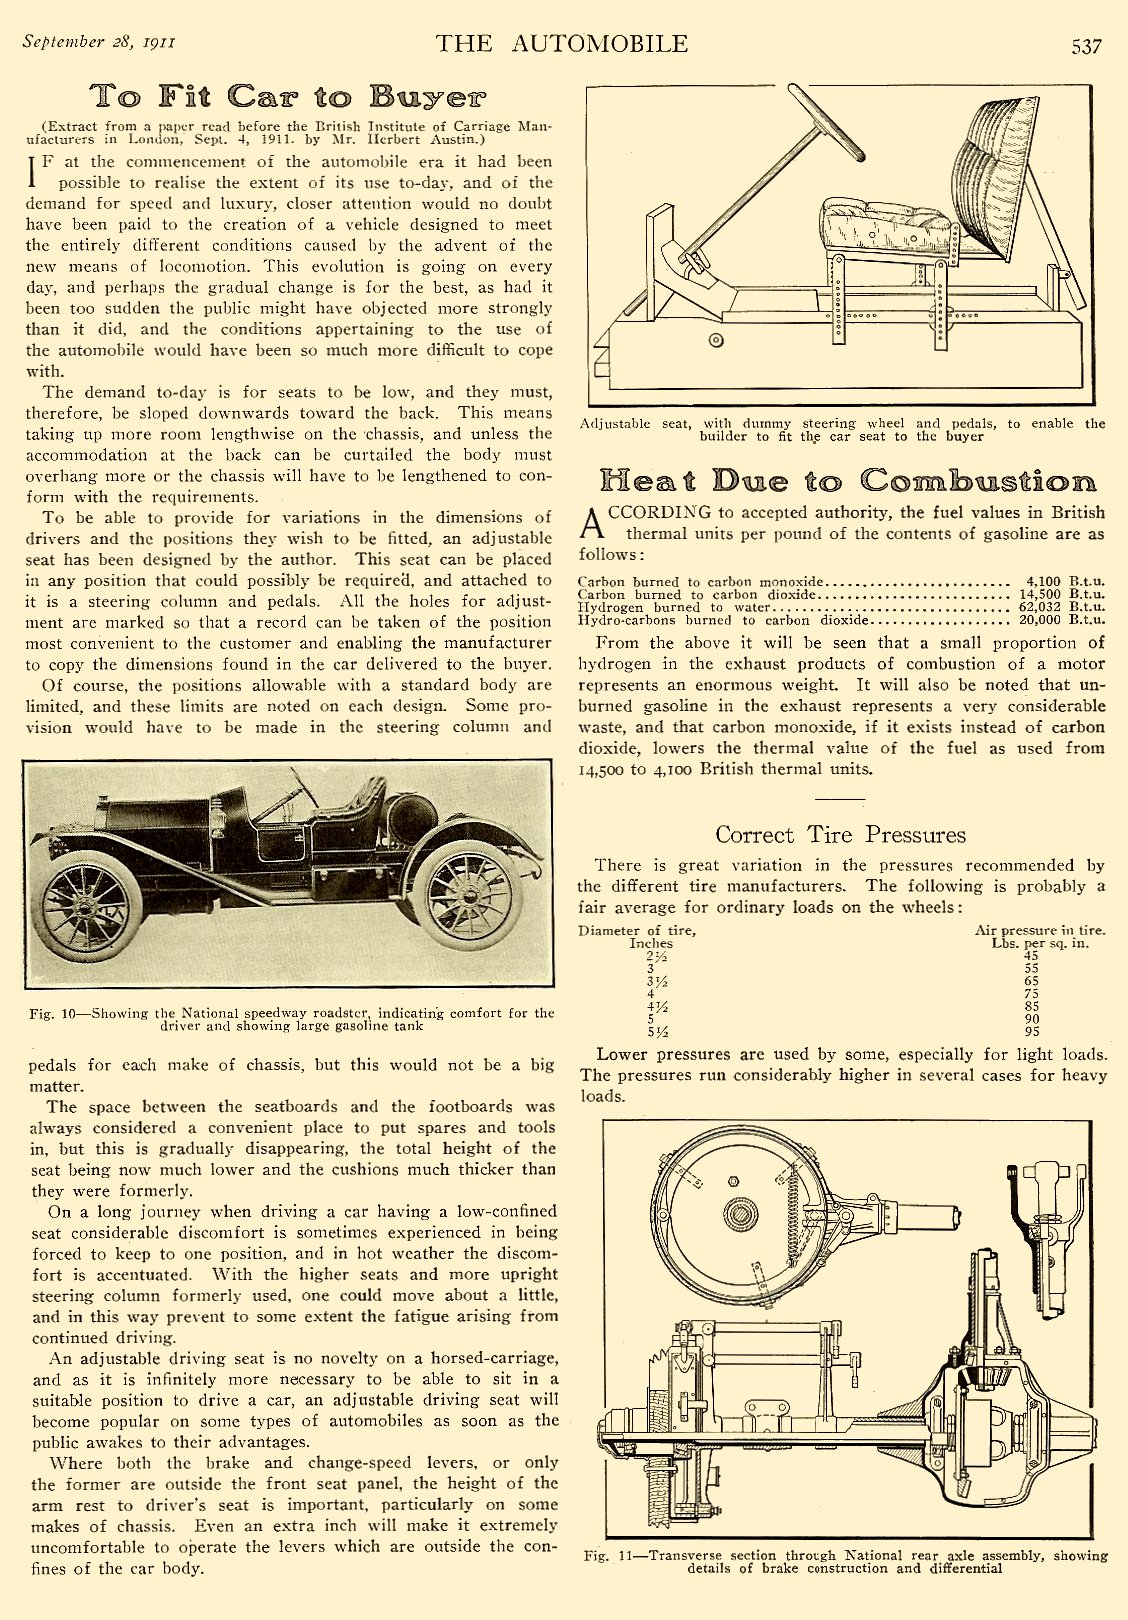 """1911 9 28 NATIONAL National """"Details of National Construction"""" THE AUTOMOBILE Vol. 25 No. 13 September 28, 1911 9″x12″ page 537"""